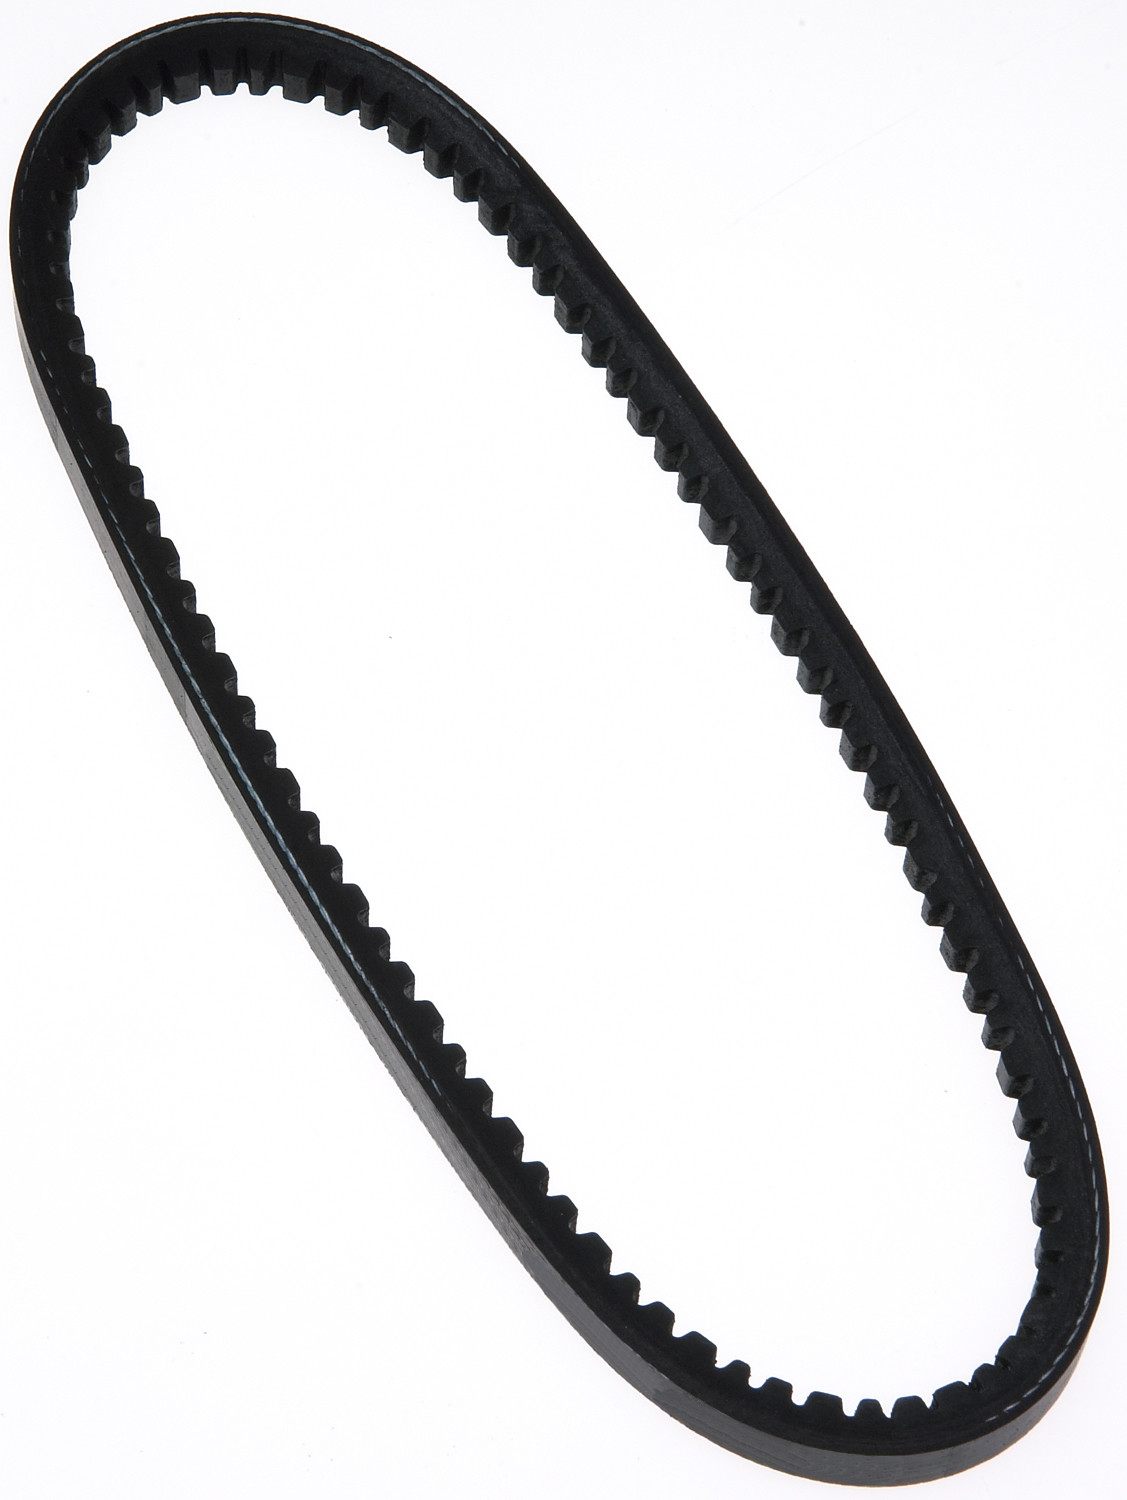 ROADMAX - High Capacity V-belt(standard) - RMX 17690AP